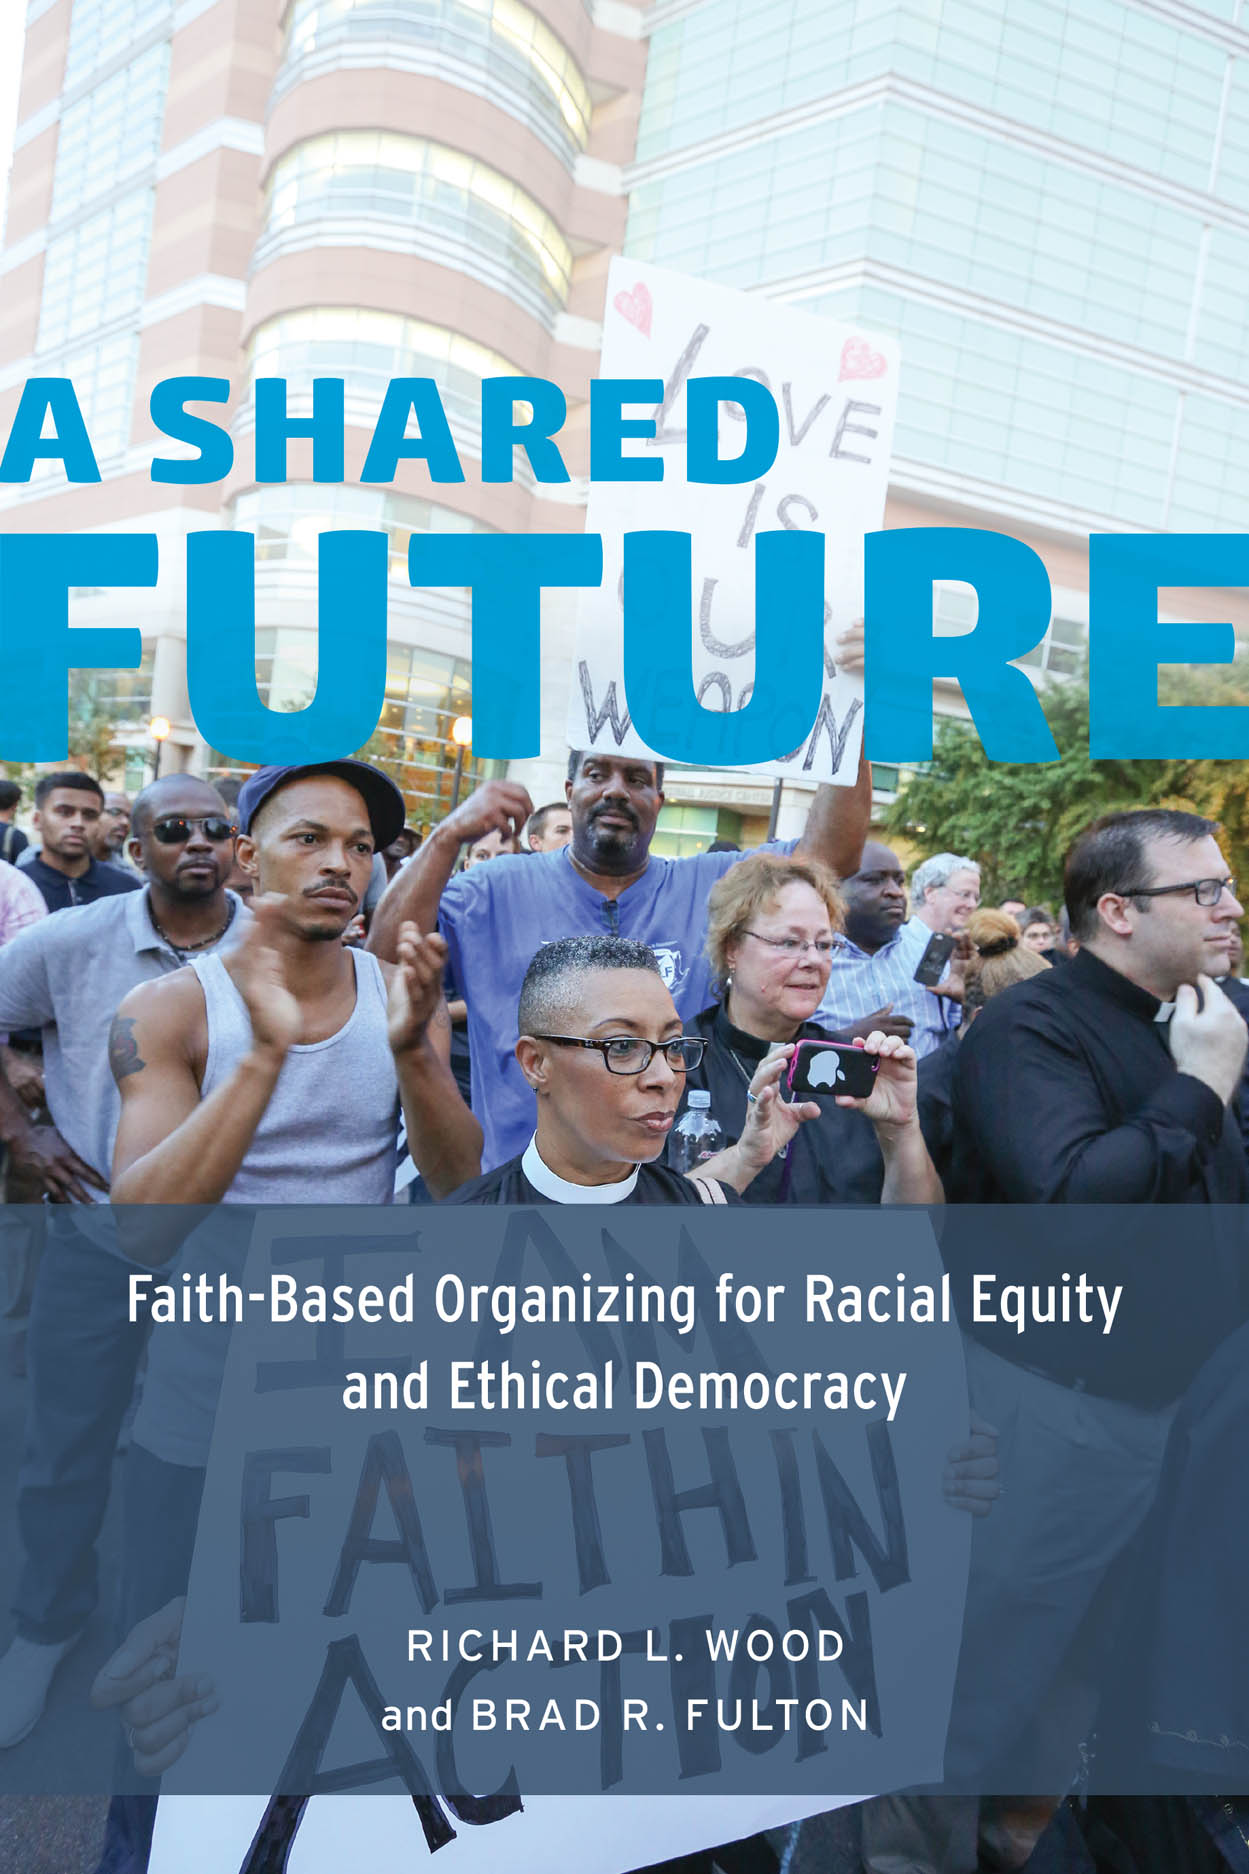 A Shared Future: Faith-Based Organizing for Racial Equity and Ethical Democracy